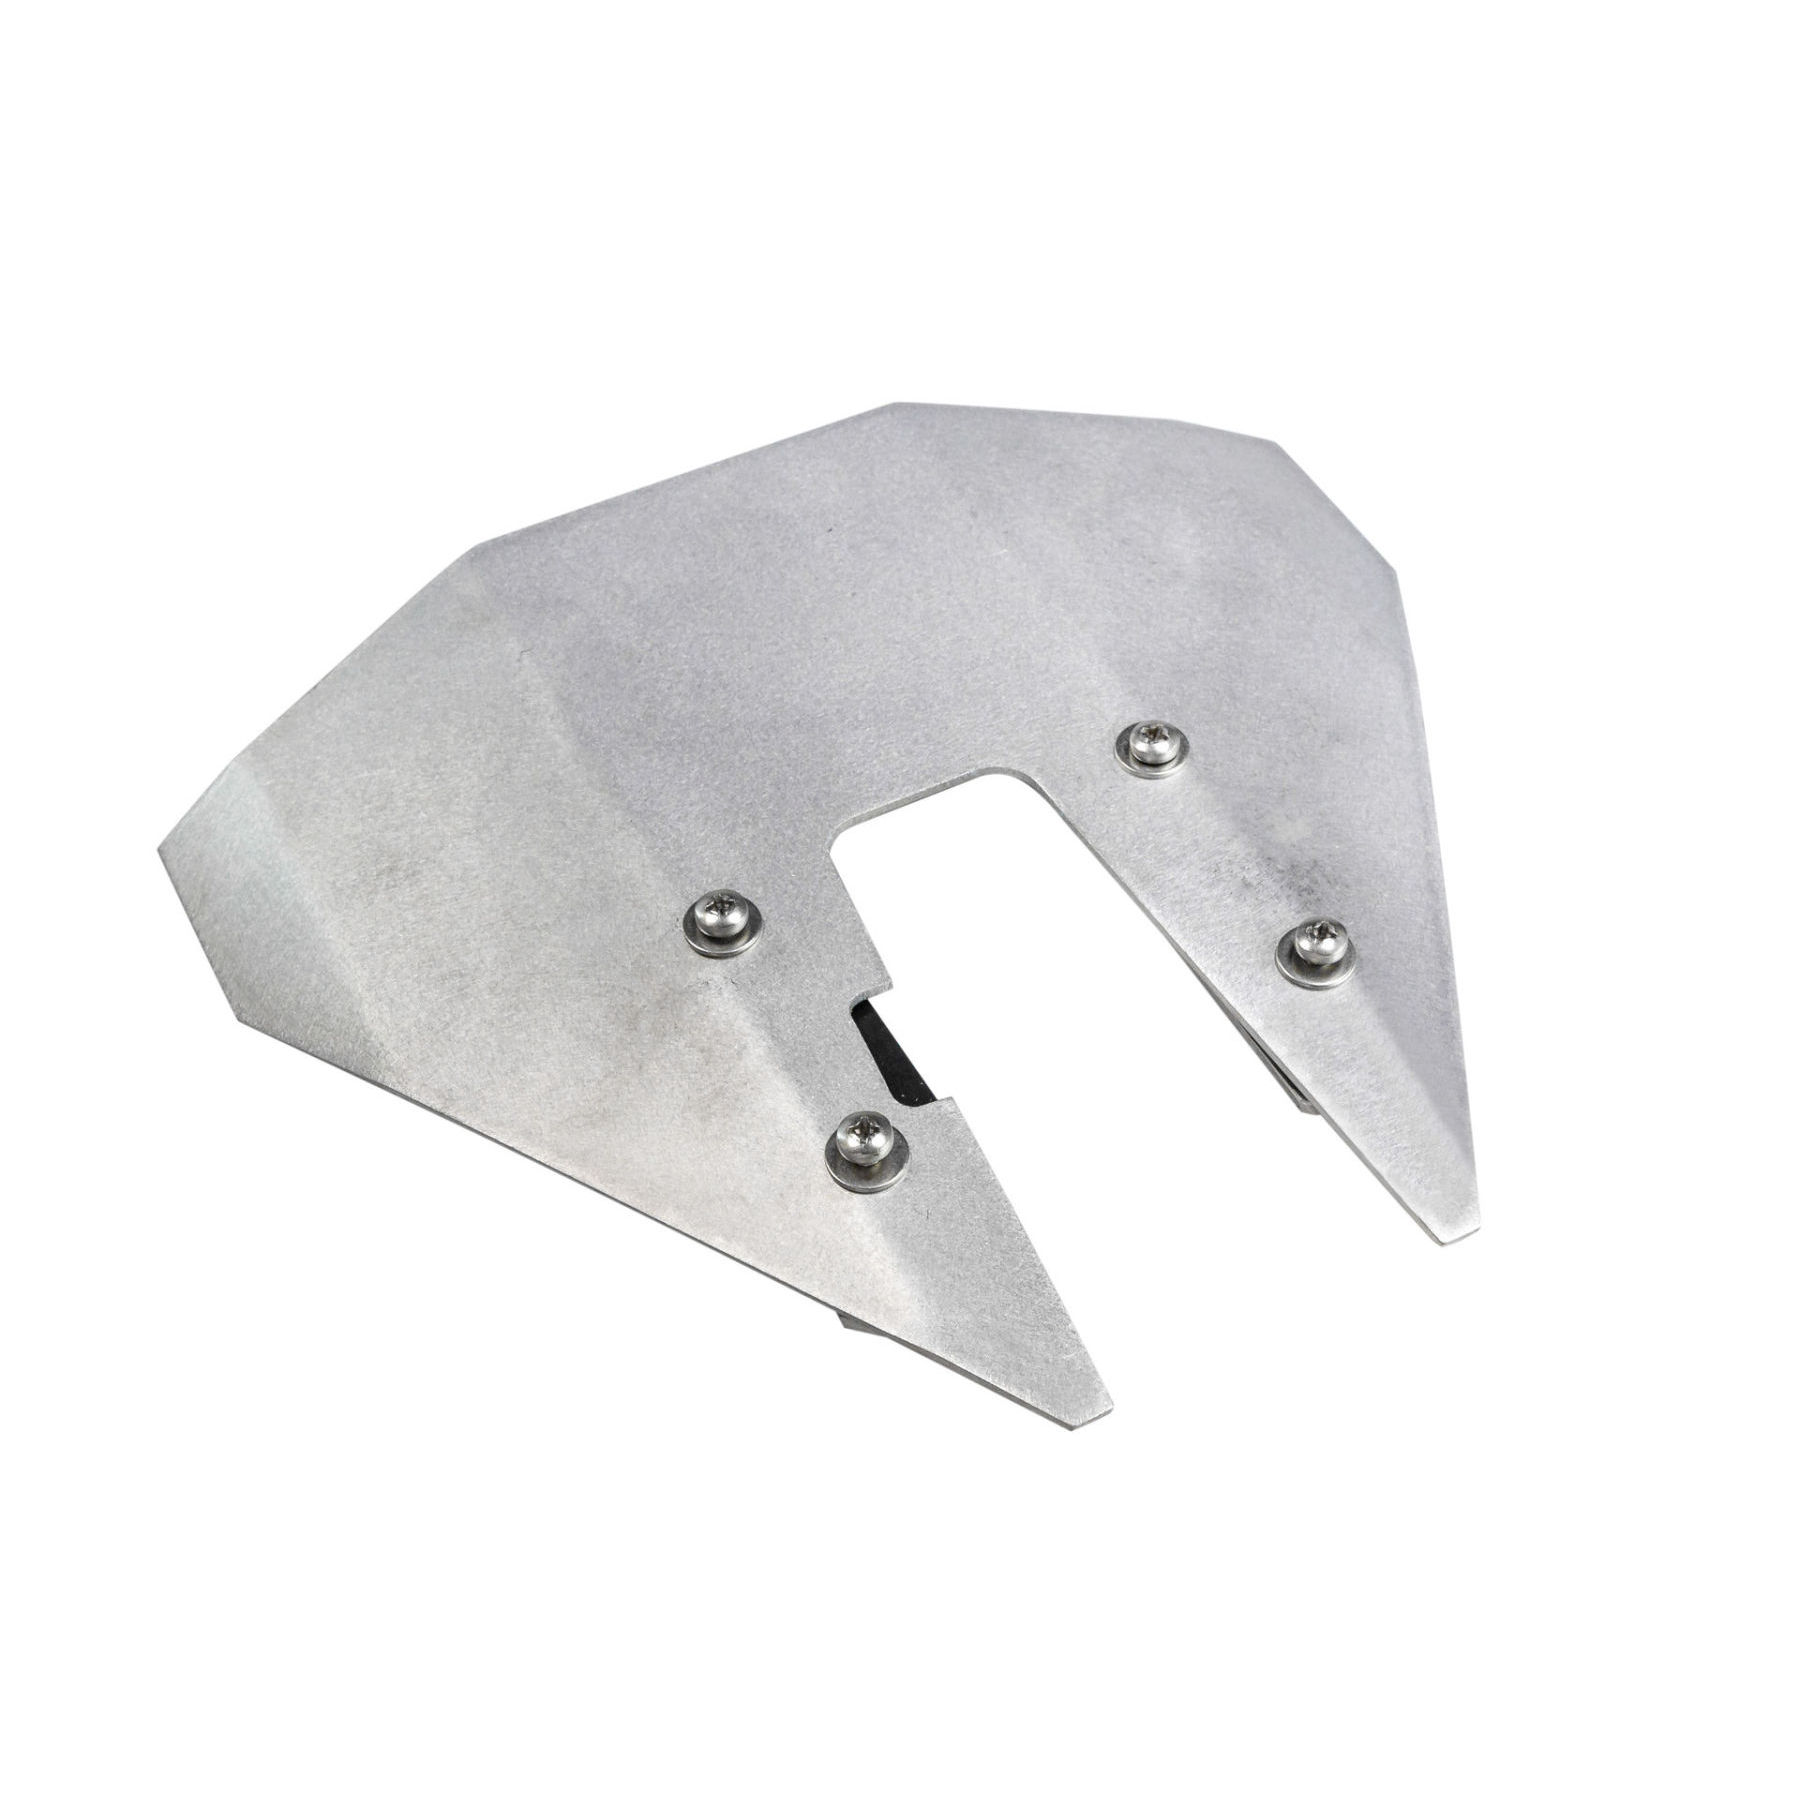 Hydraulic Wing For Outboard Boat Motor 4-6 Hp Removable, Aluminum Tsm-krylo4-6/2